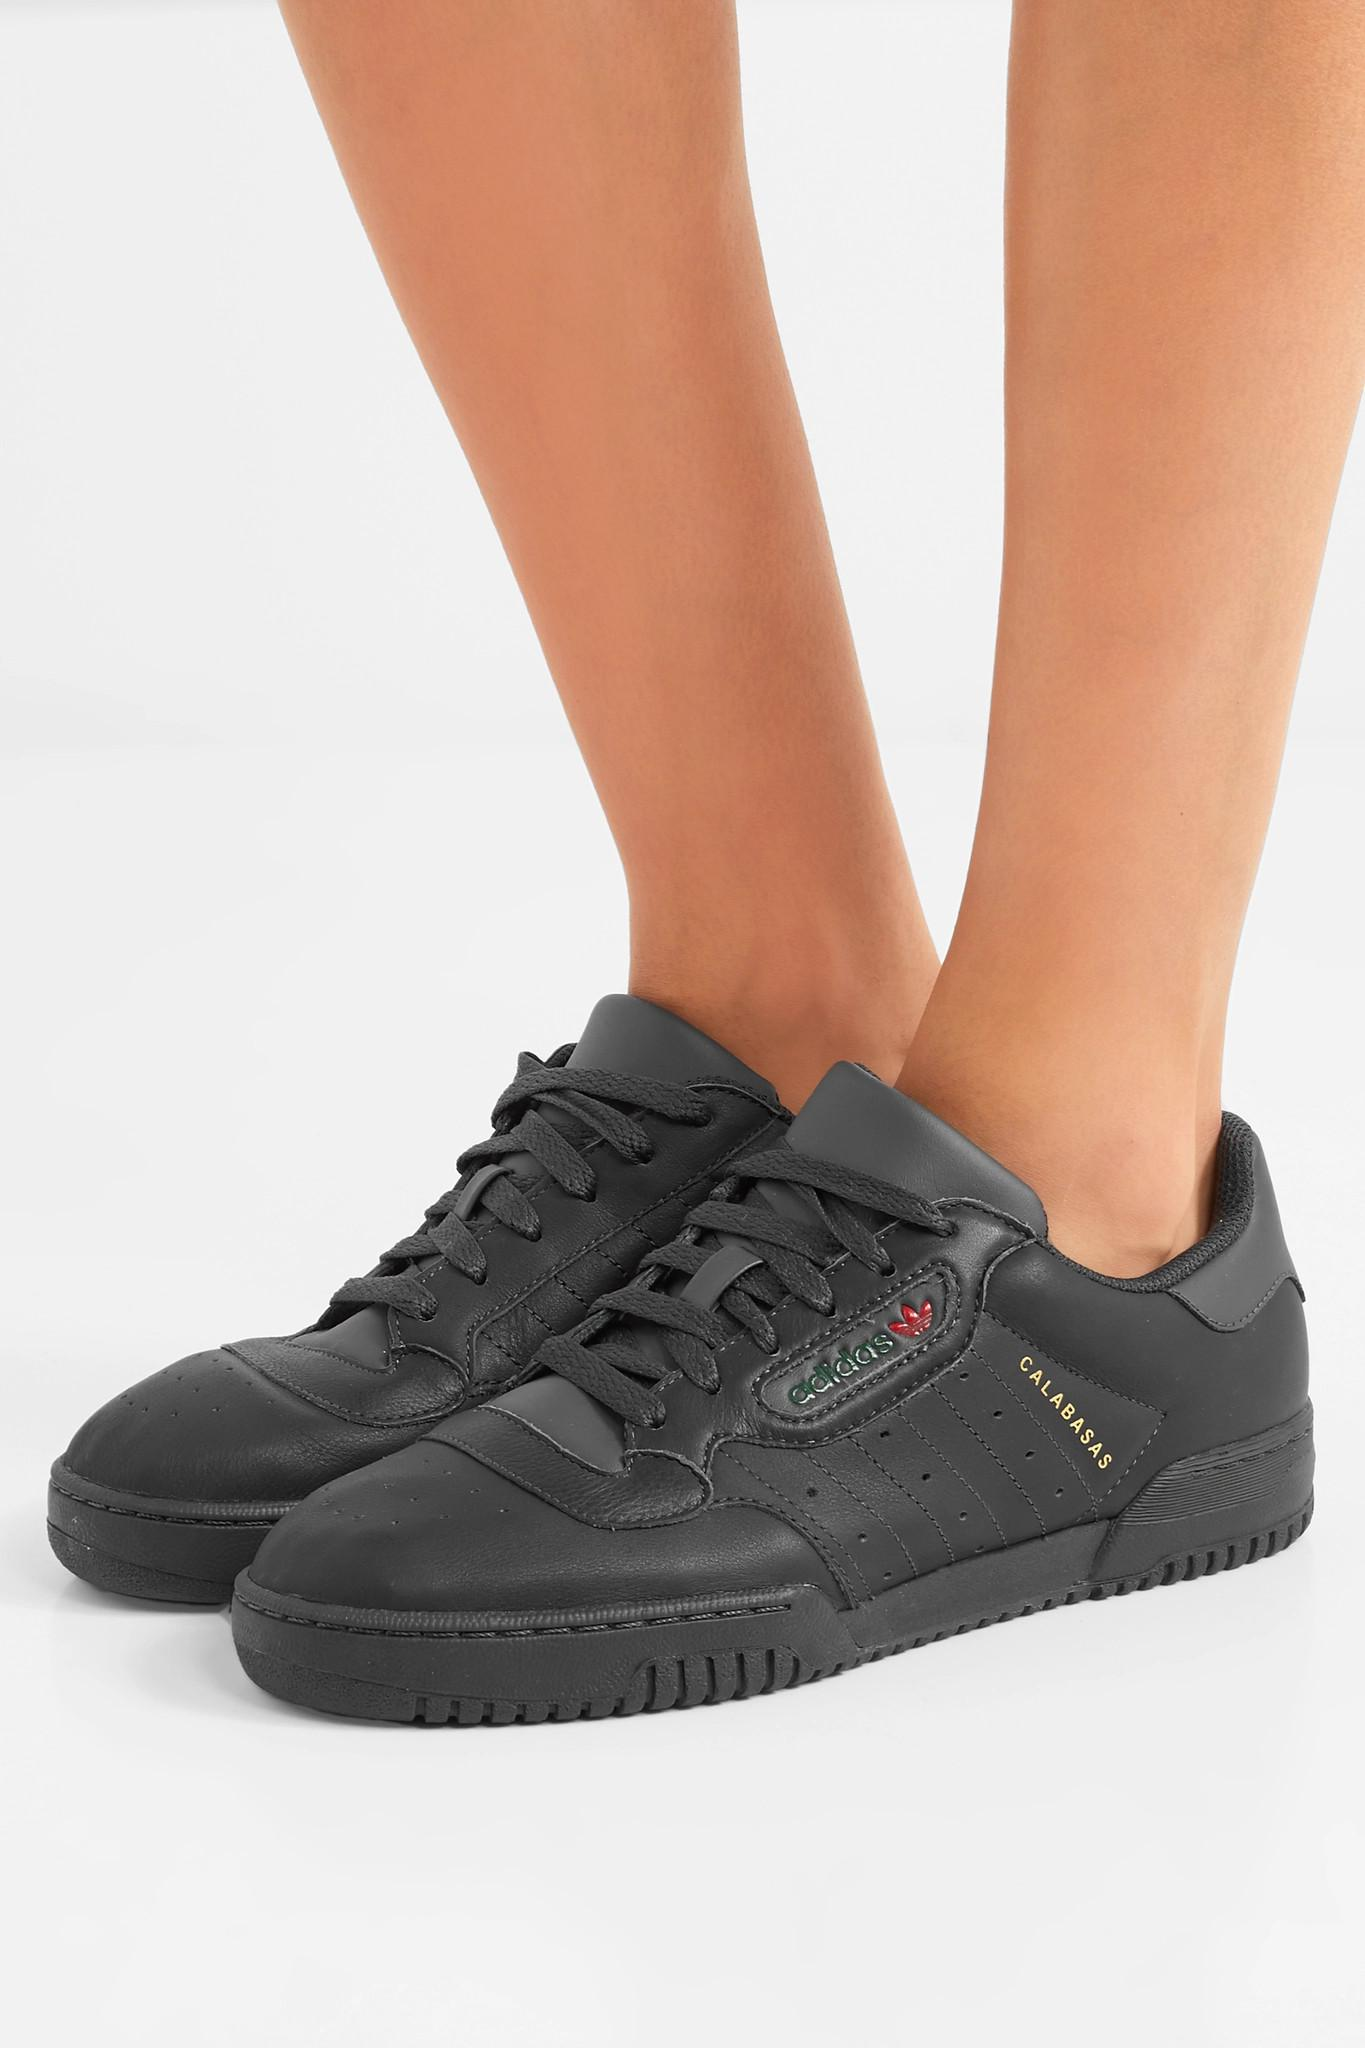 f9c8127a9ed37 Adidas Originals - Black + Yeezy Powerphase Calabasas Leather Sneakers -  Lyst. View fullscreen